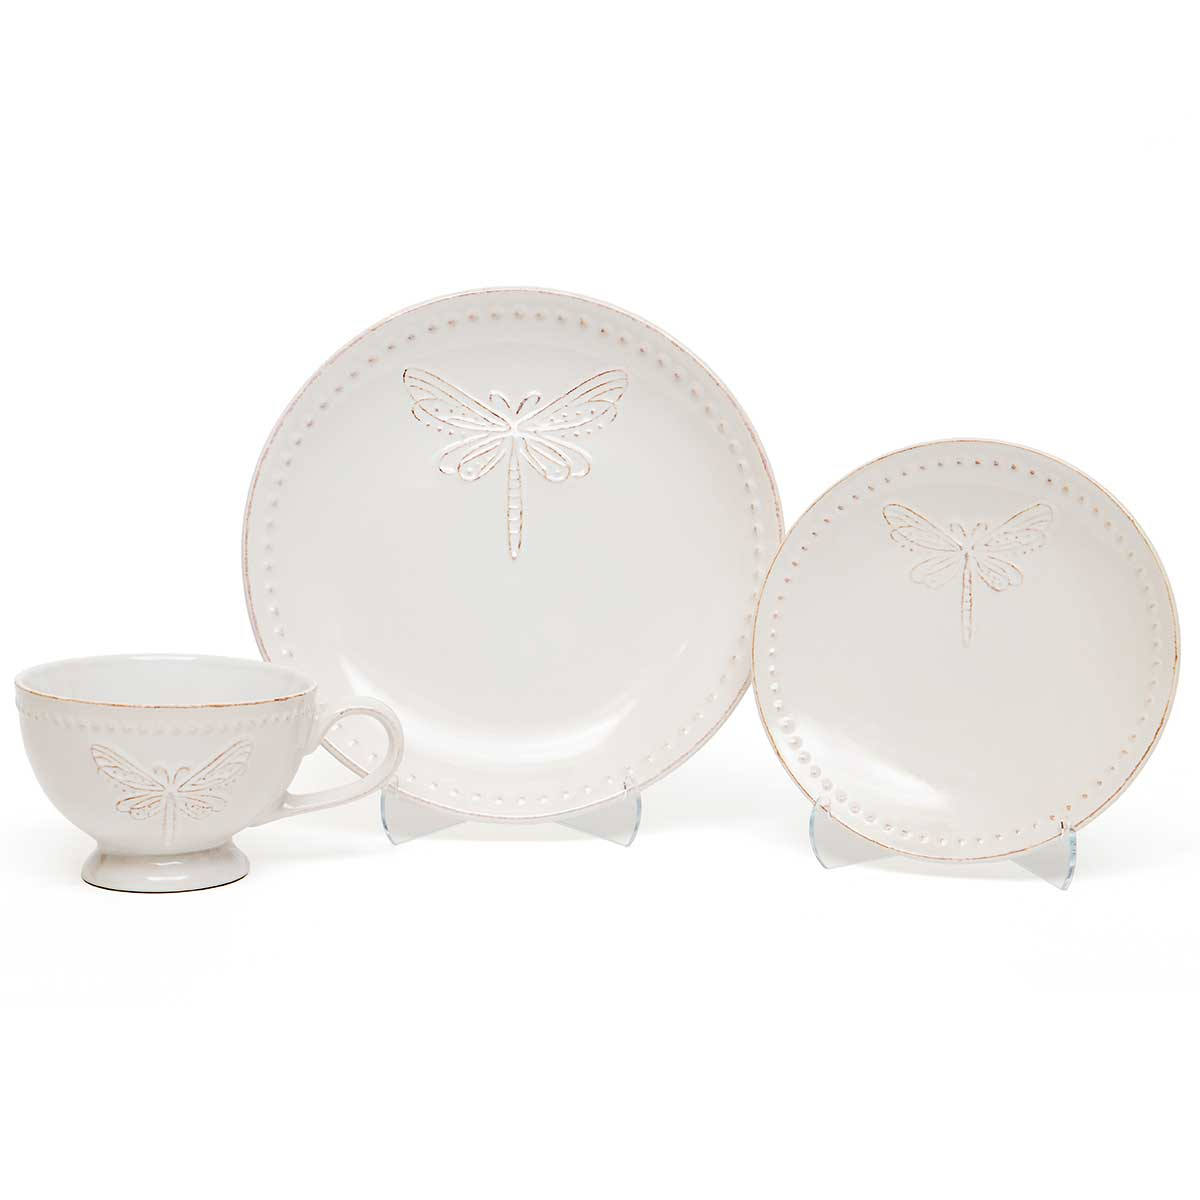 DRAGONFLY DISH 3-PIECE SET